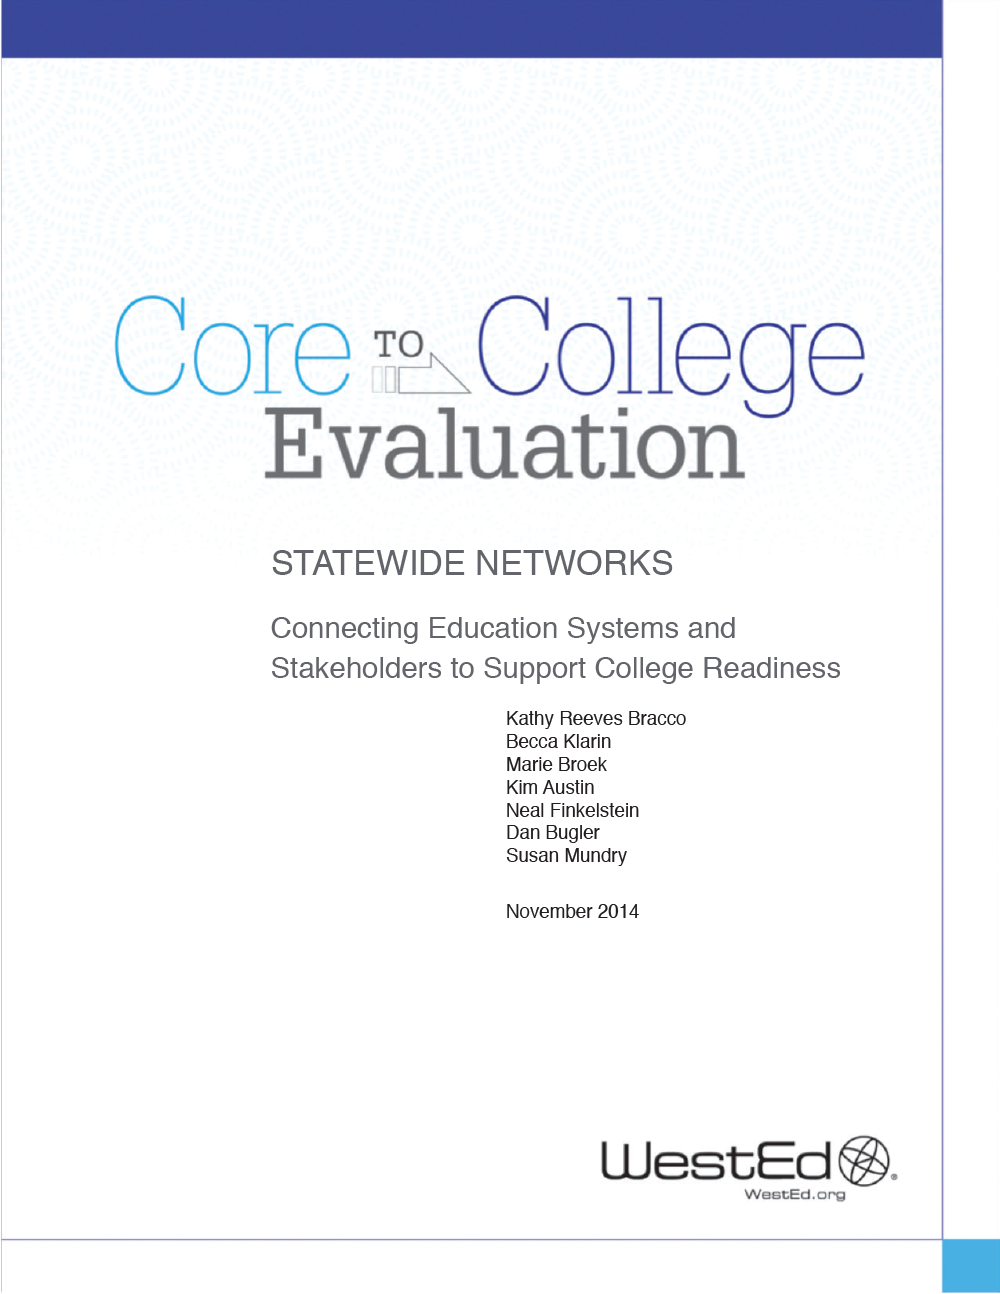 Cover image of Core to College Evaluation: Statewide Networks Connecting Education Systems and Stakeholders to Support College Readiness